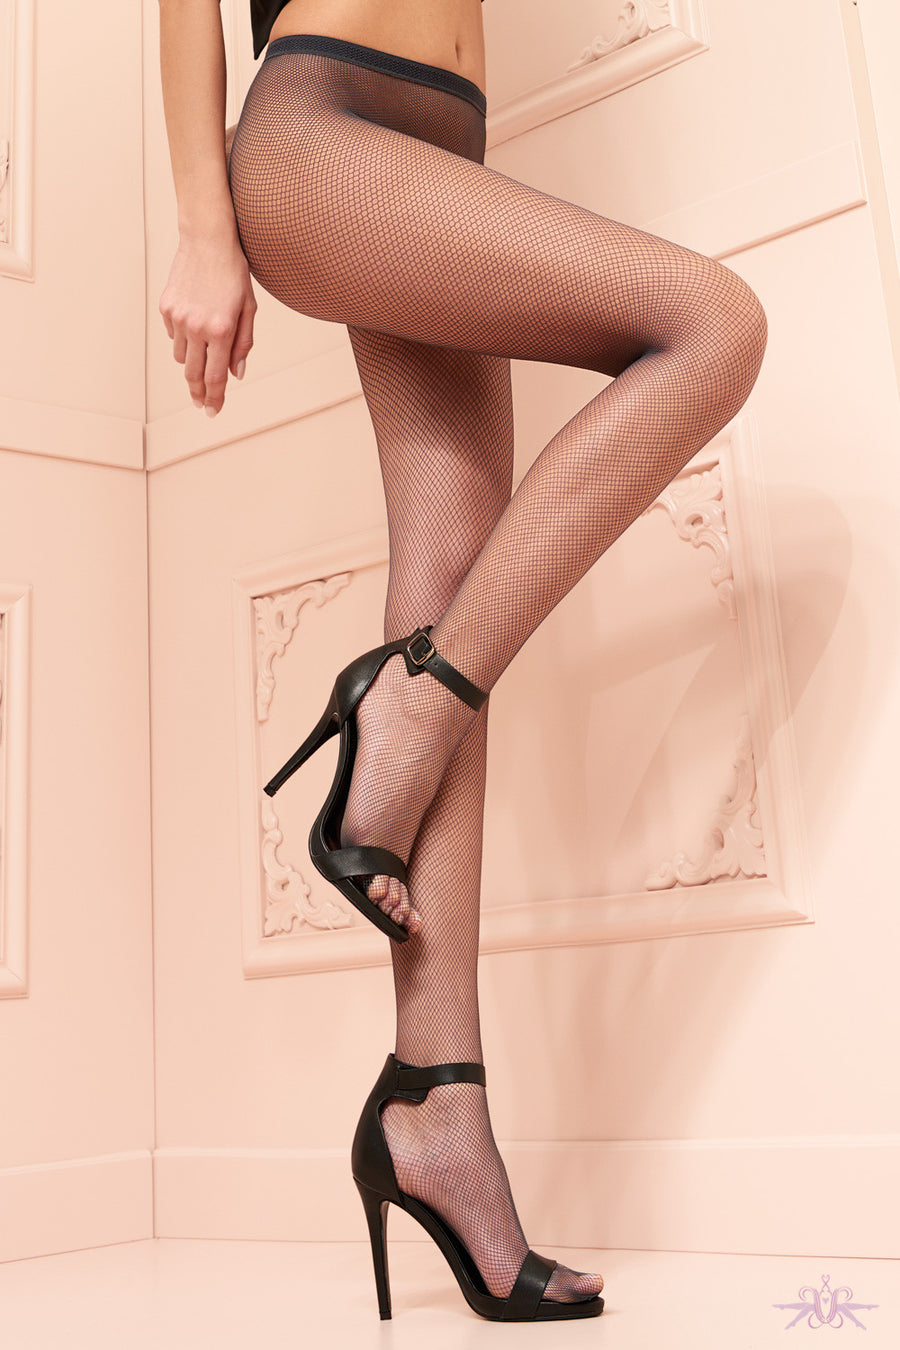 Trasparenze Ambra Tight - Mayfair Stockings